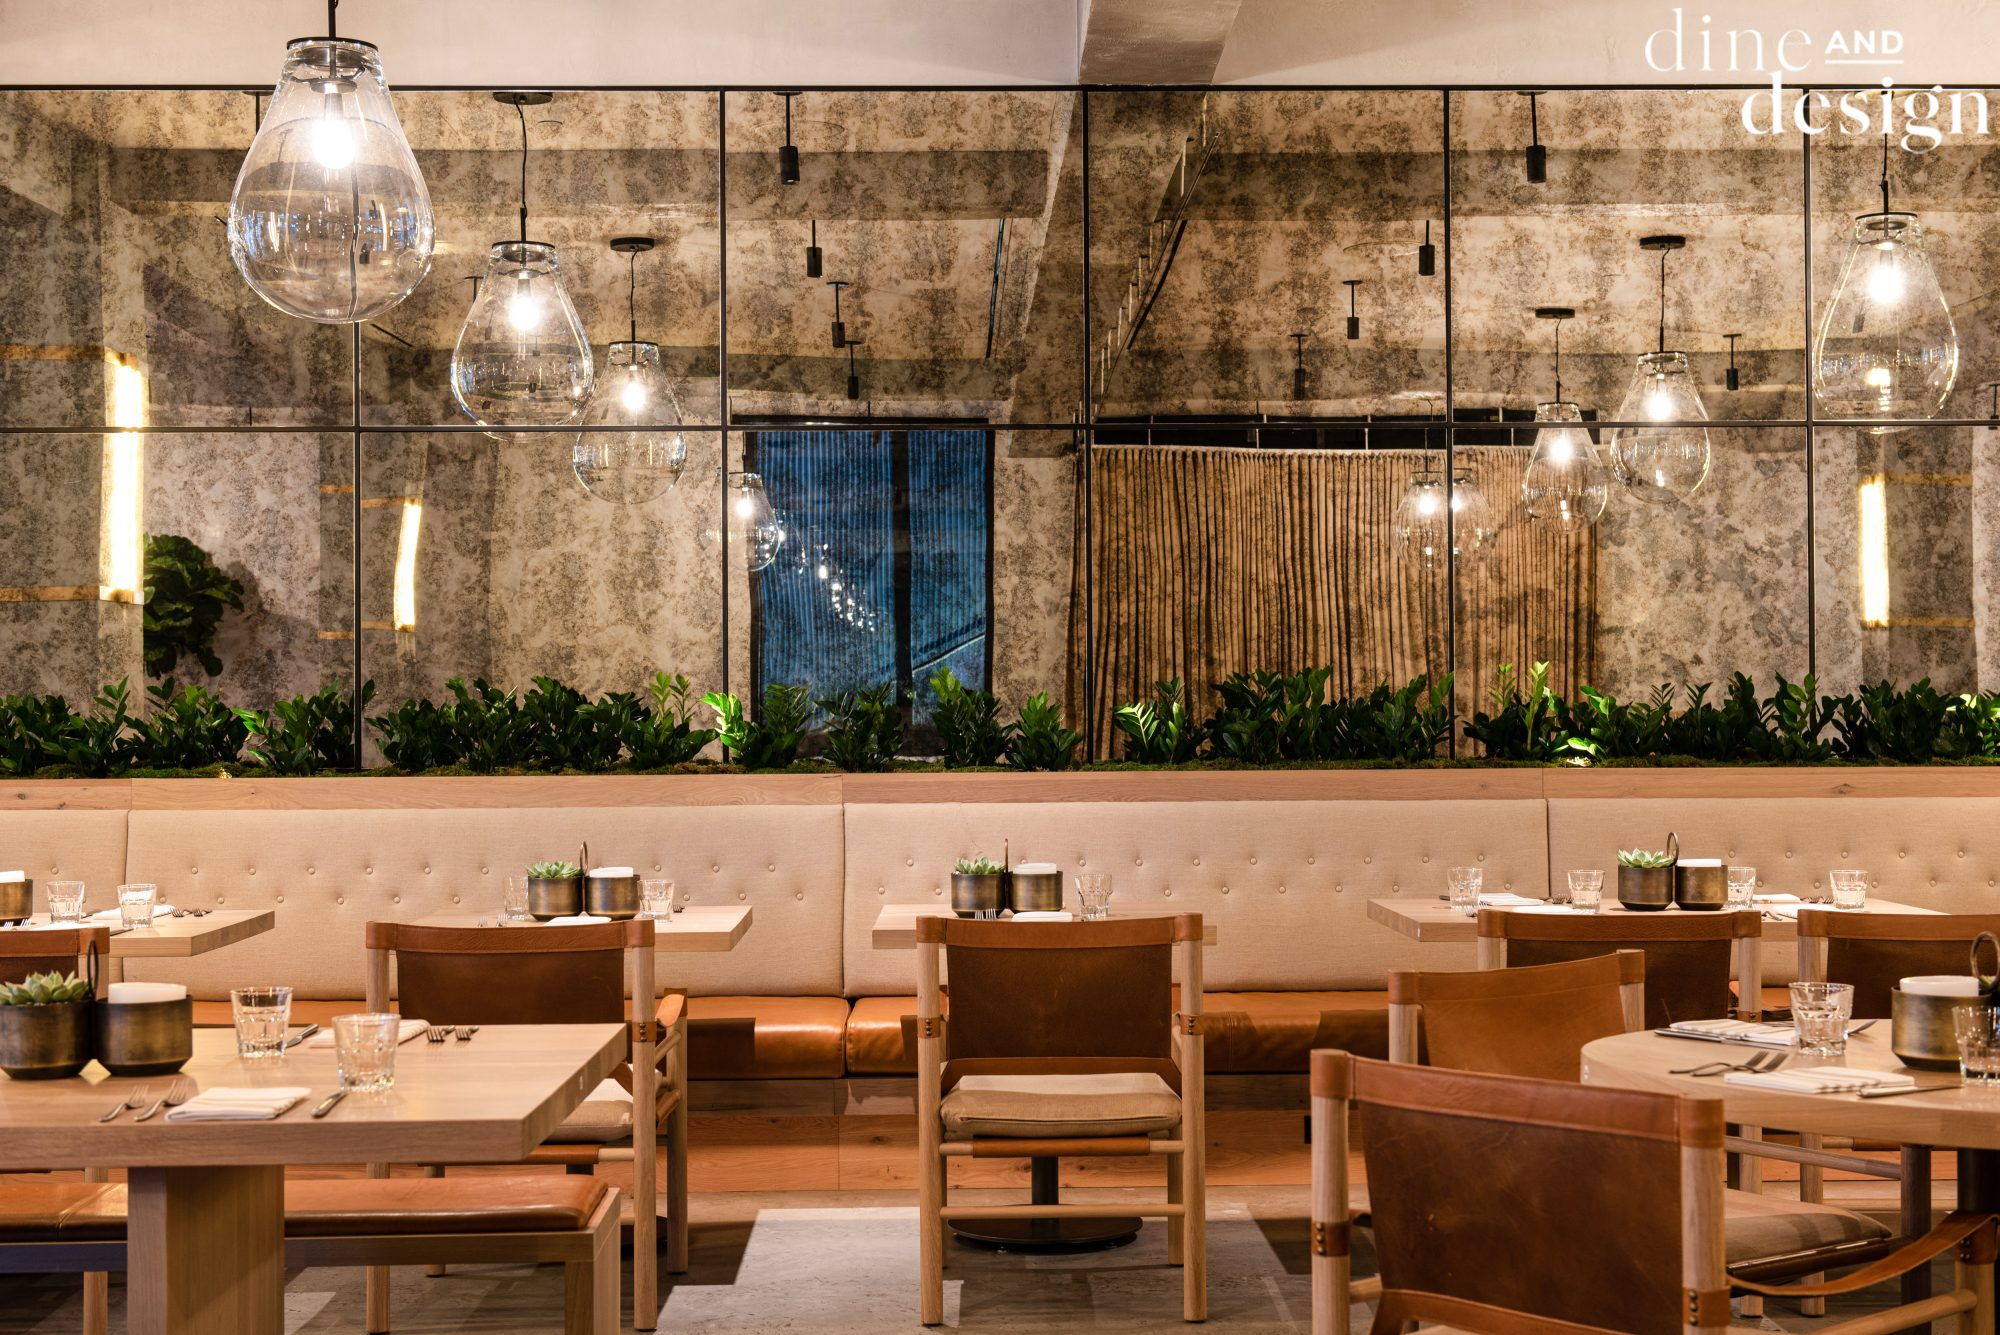 Dine Design Malibu Farm Delivers Cauliflower Pizza And California Charm New Yorkers Never Knew They Needed Martha Stewart